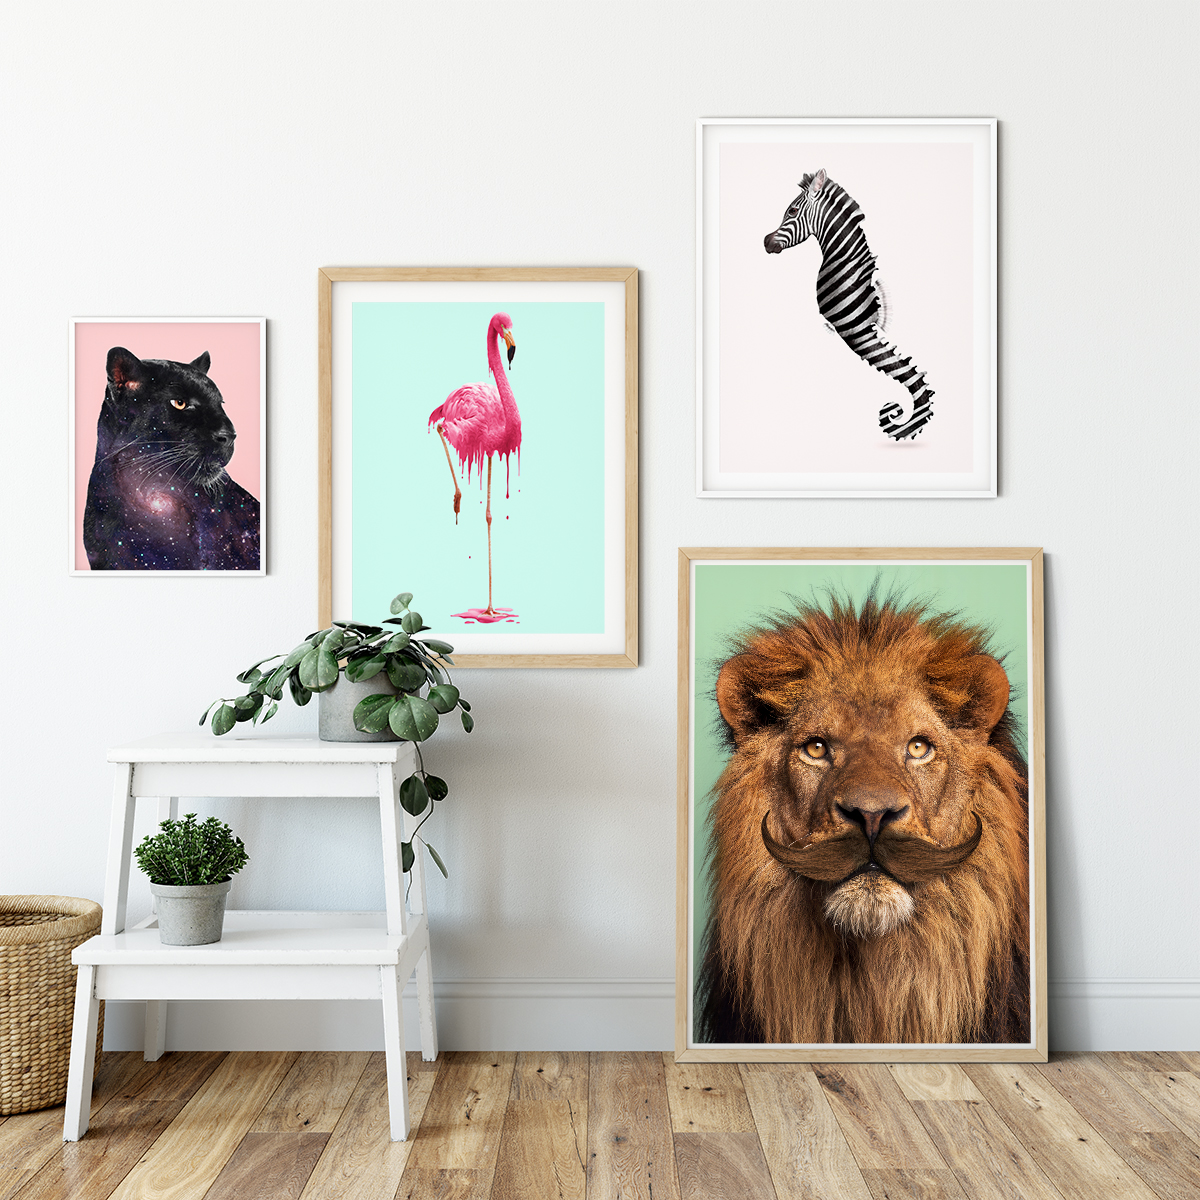 Wall Art - Art Prints, Framed Art Prints, Canvas, Framed Canvas